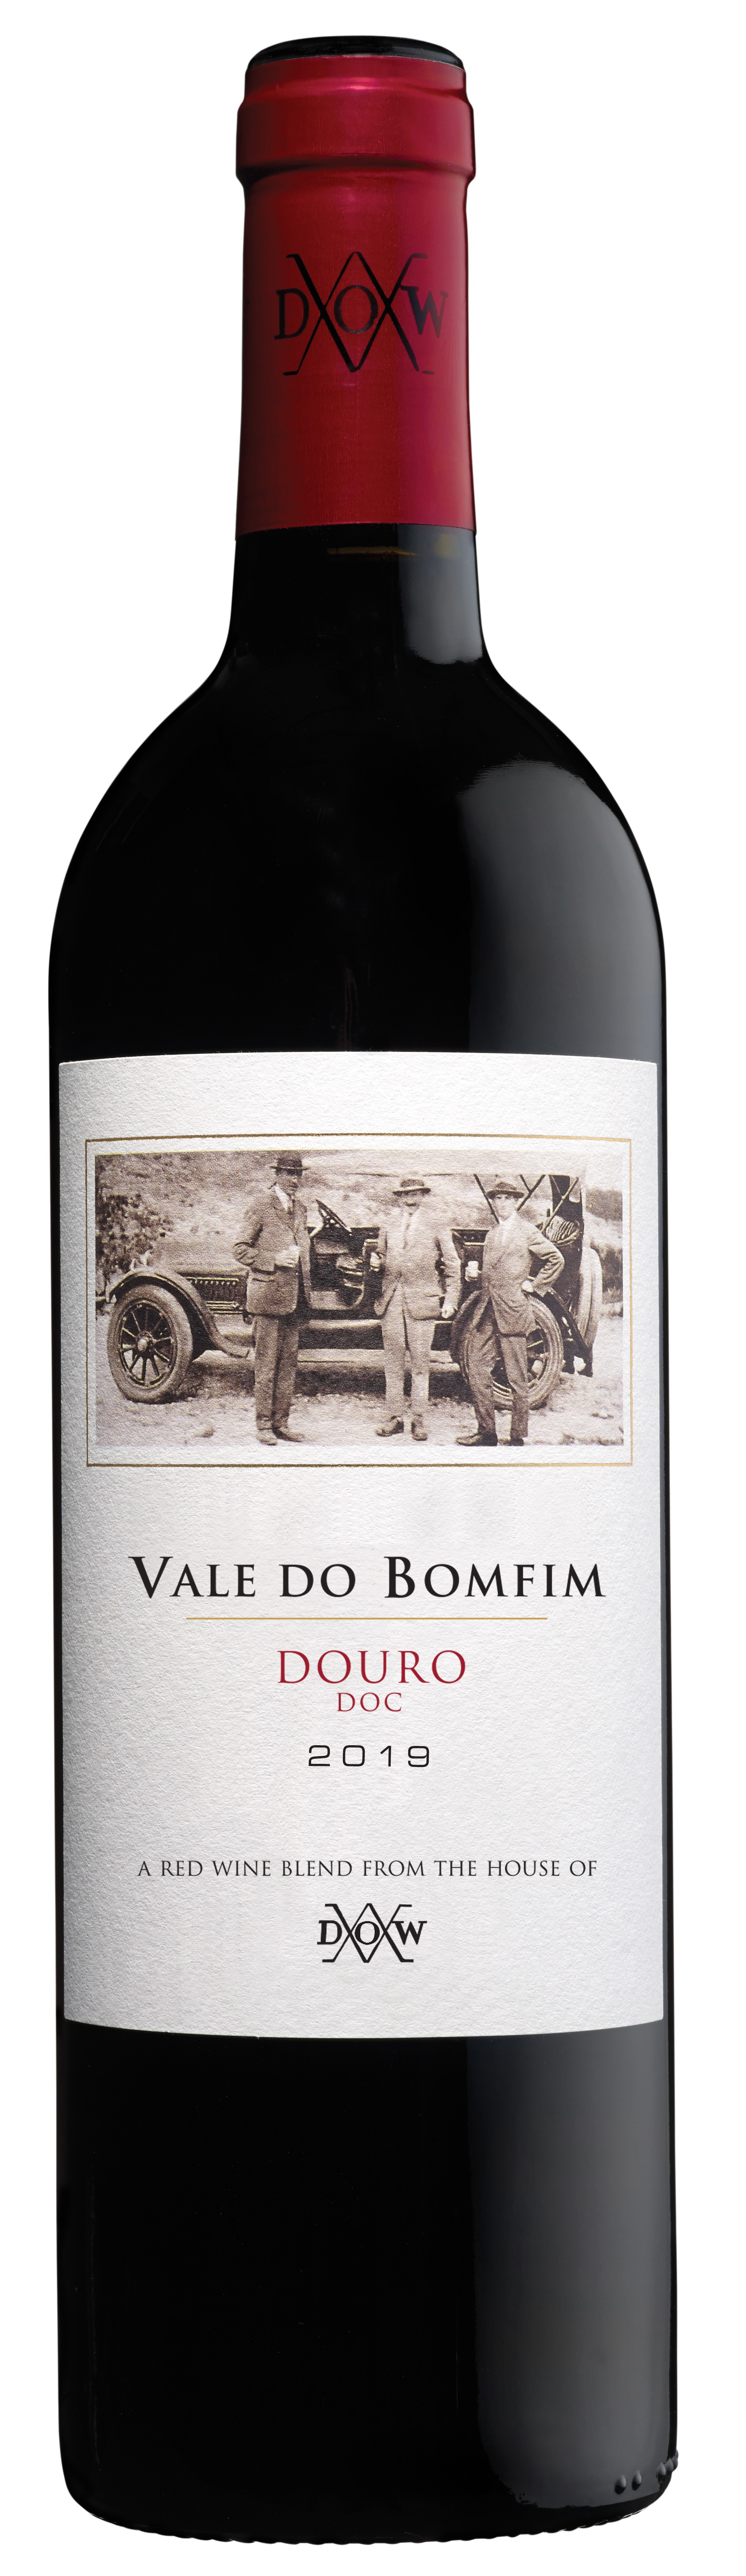 Product Image for DOW'S VALE DO BOMFIM DOURO RED 2019